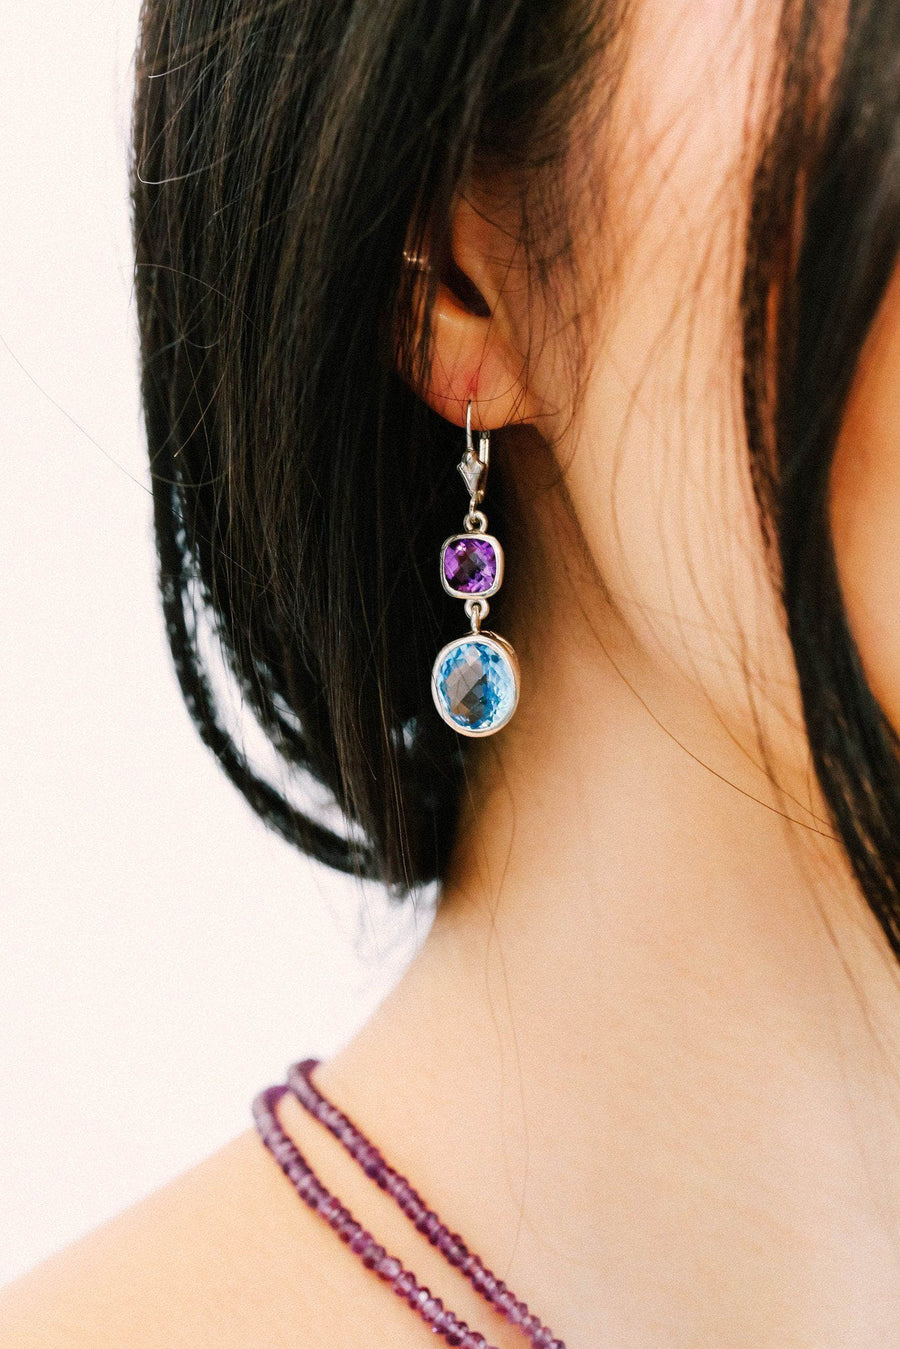 Blue Topaz and Amethyst Double Bezel Earrings - Inaya Jewelry